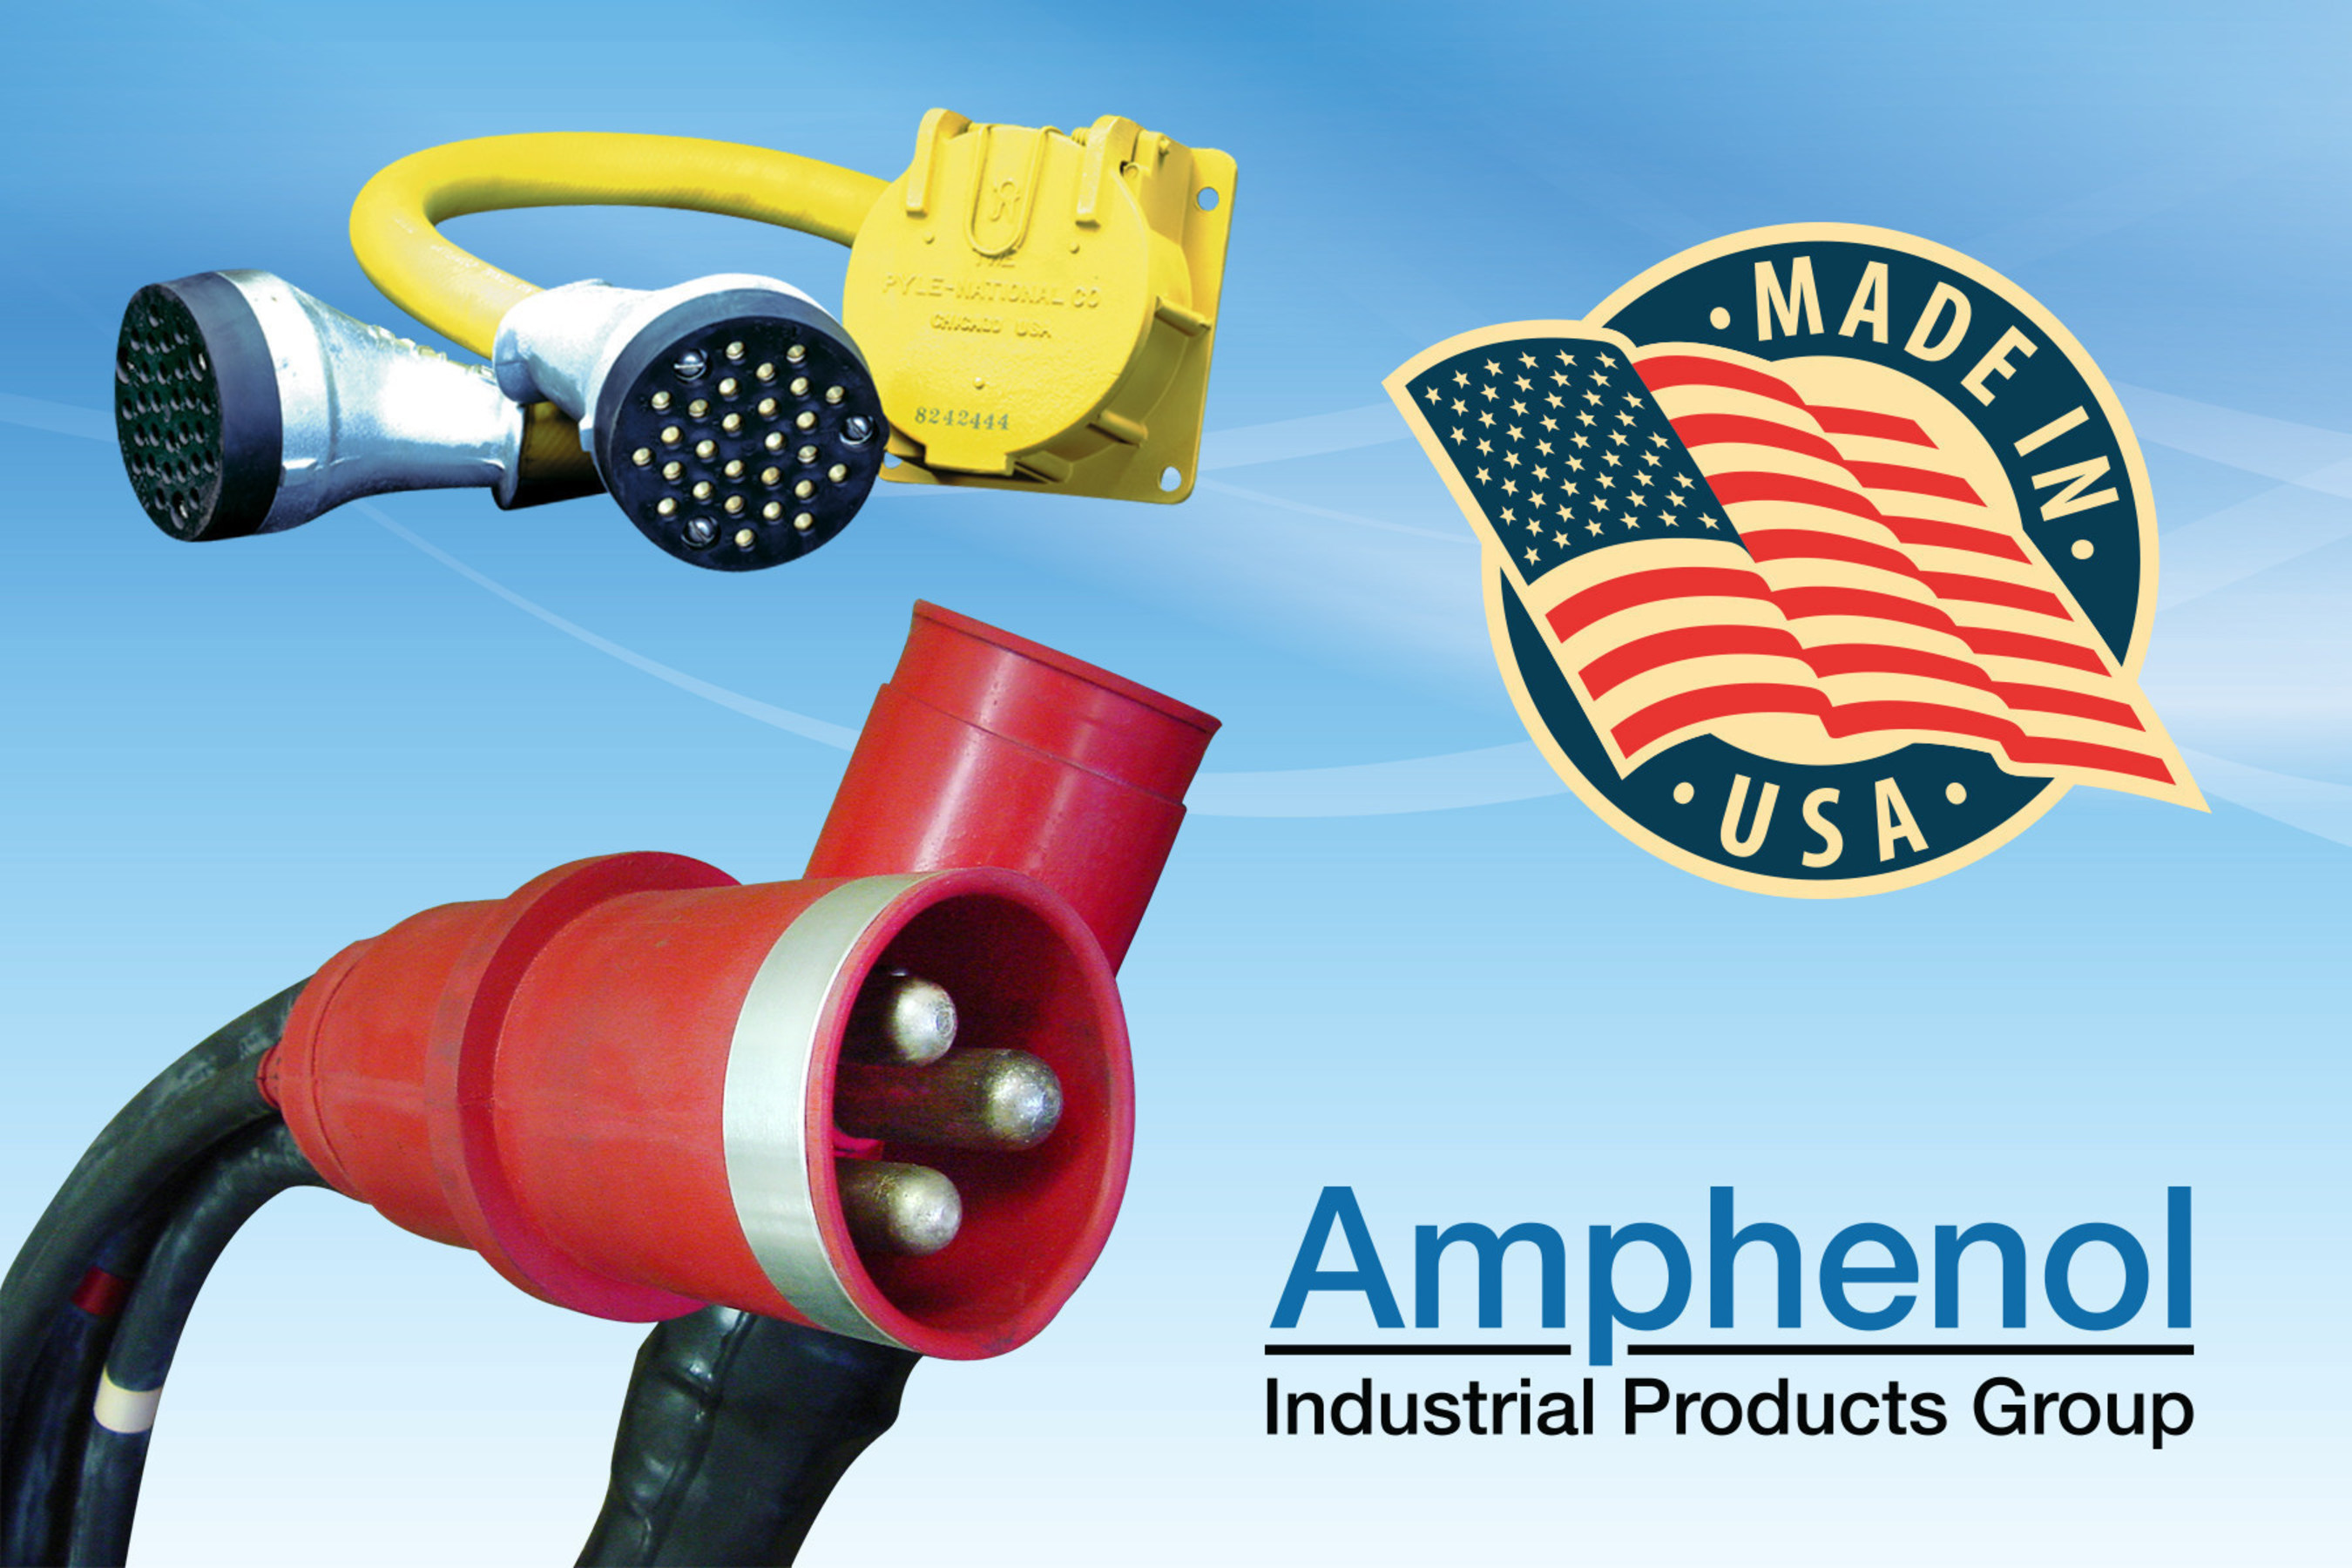 Amphenol Industrial Opens Facility near Chicago to Support Buy America